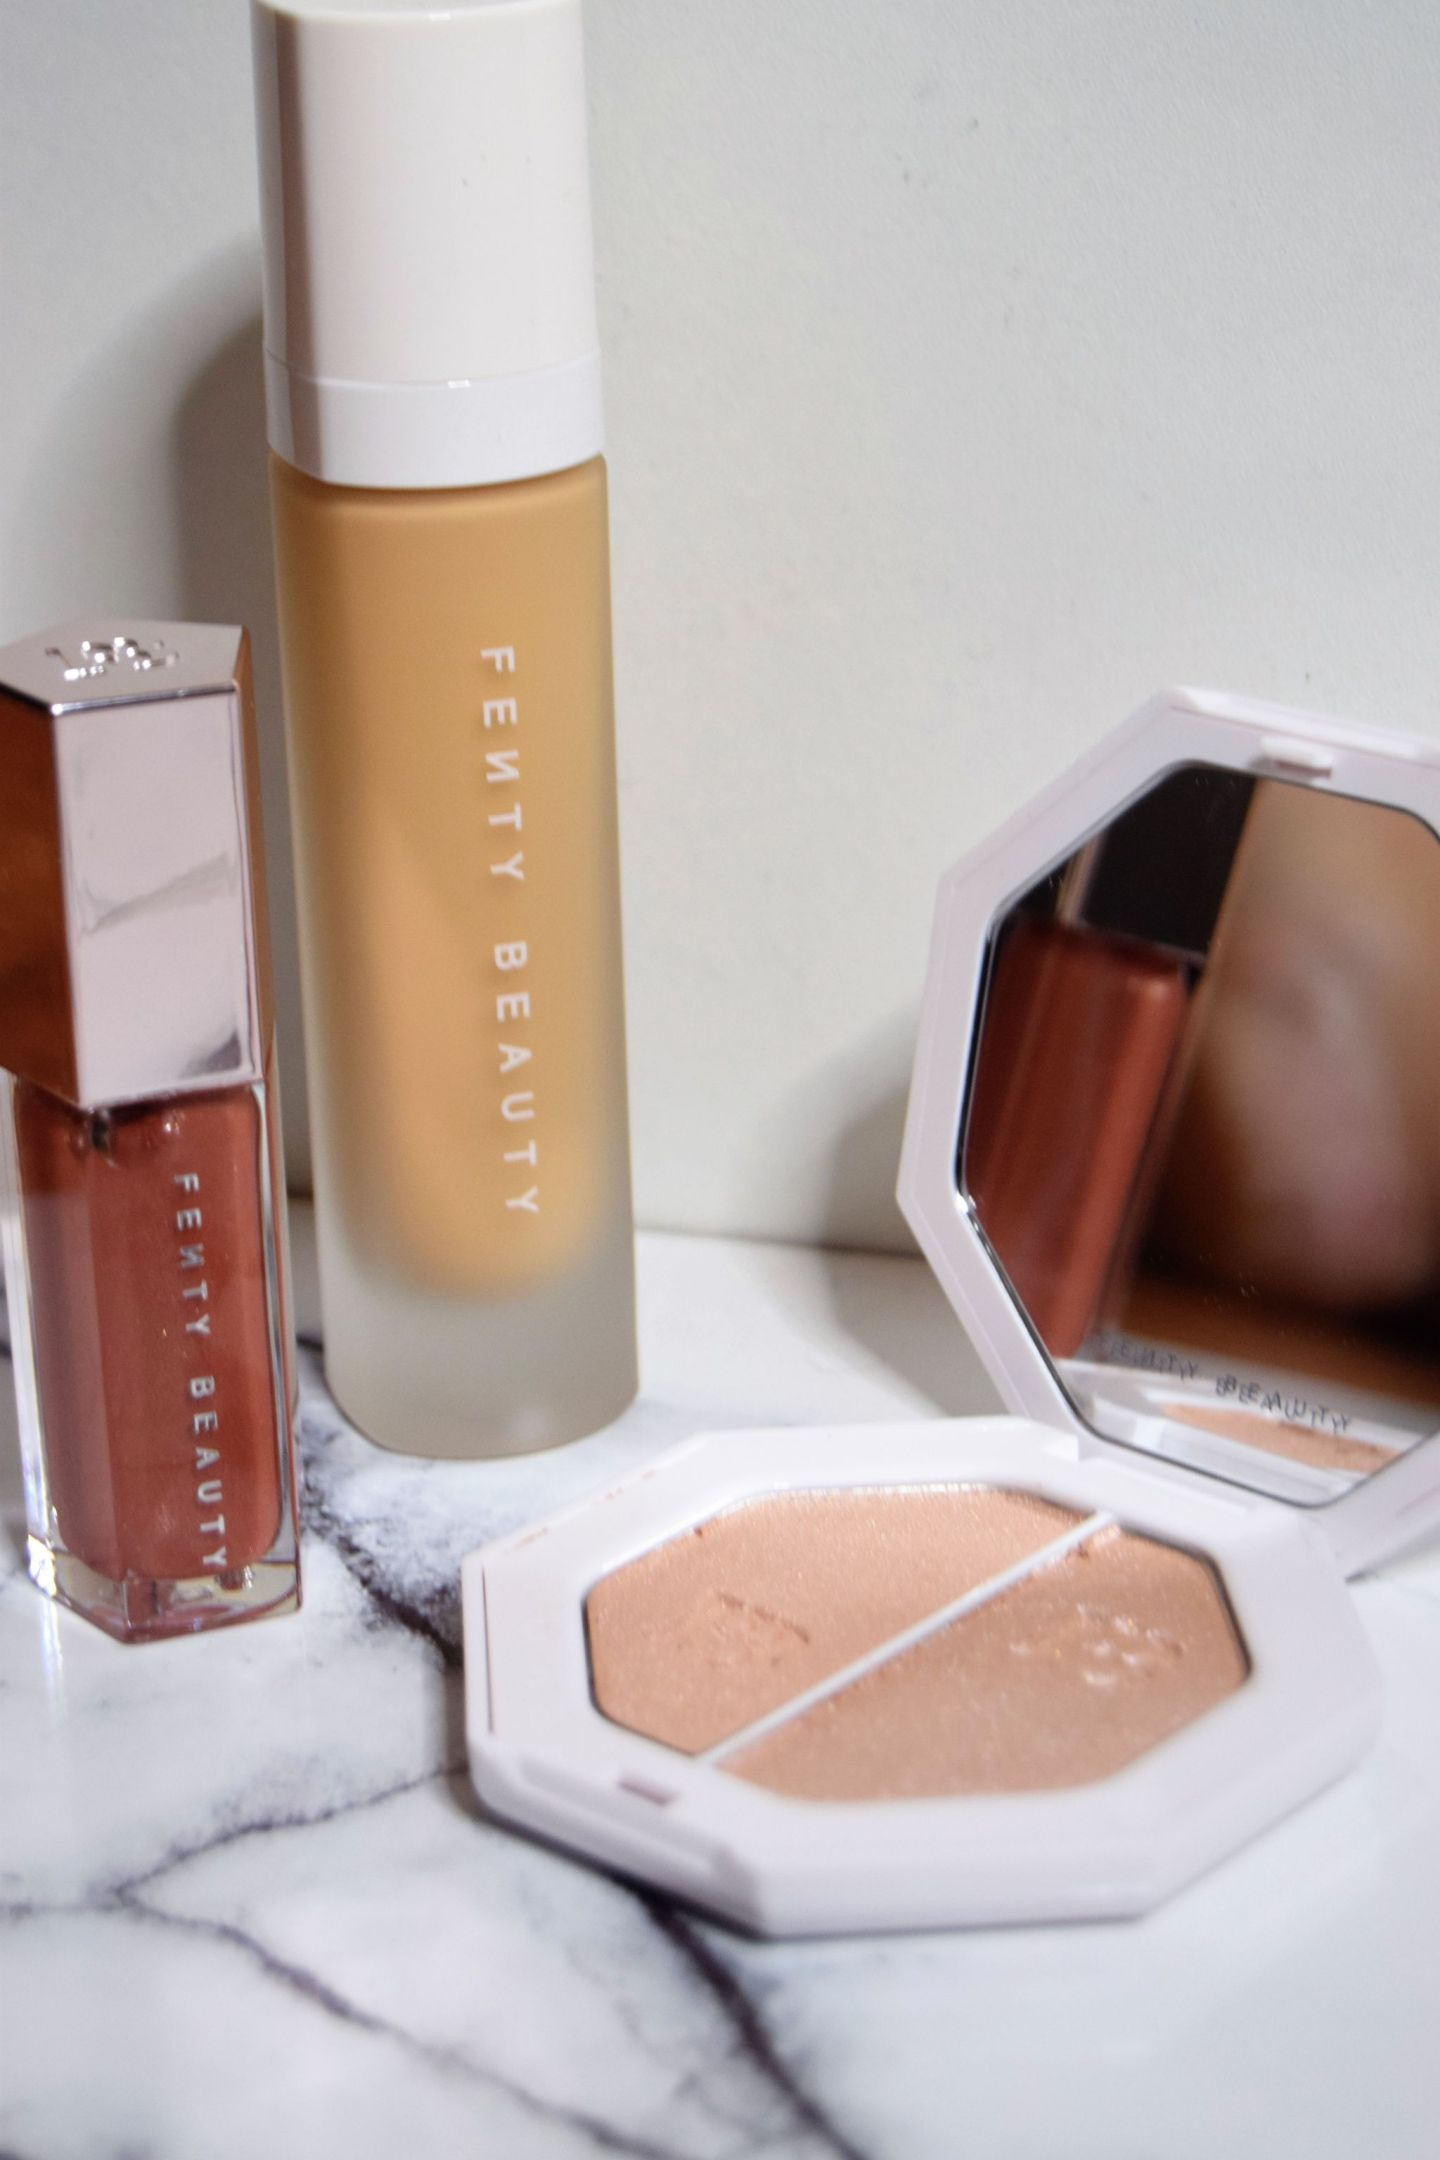 FENTY Beauty: Worth The Hype????